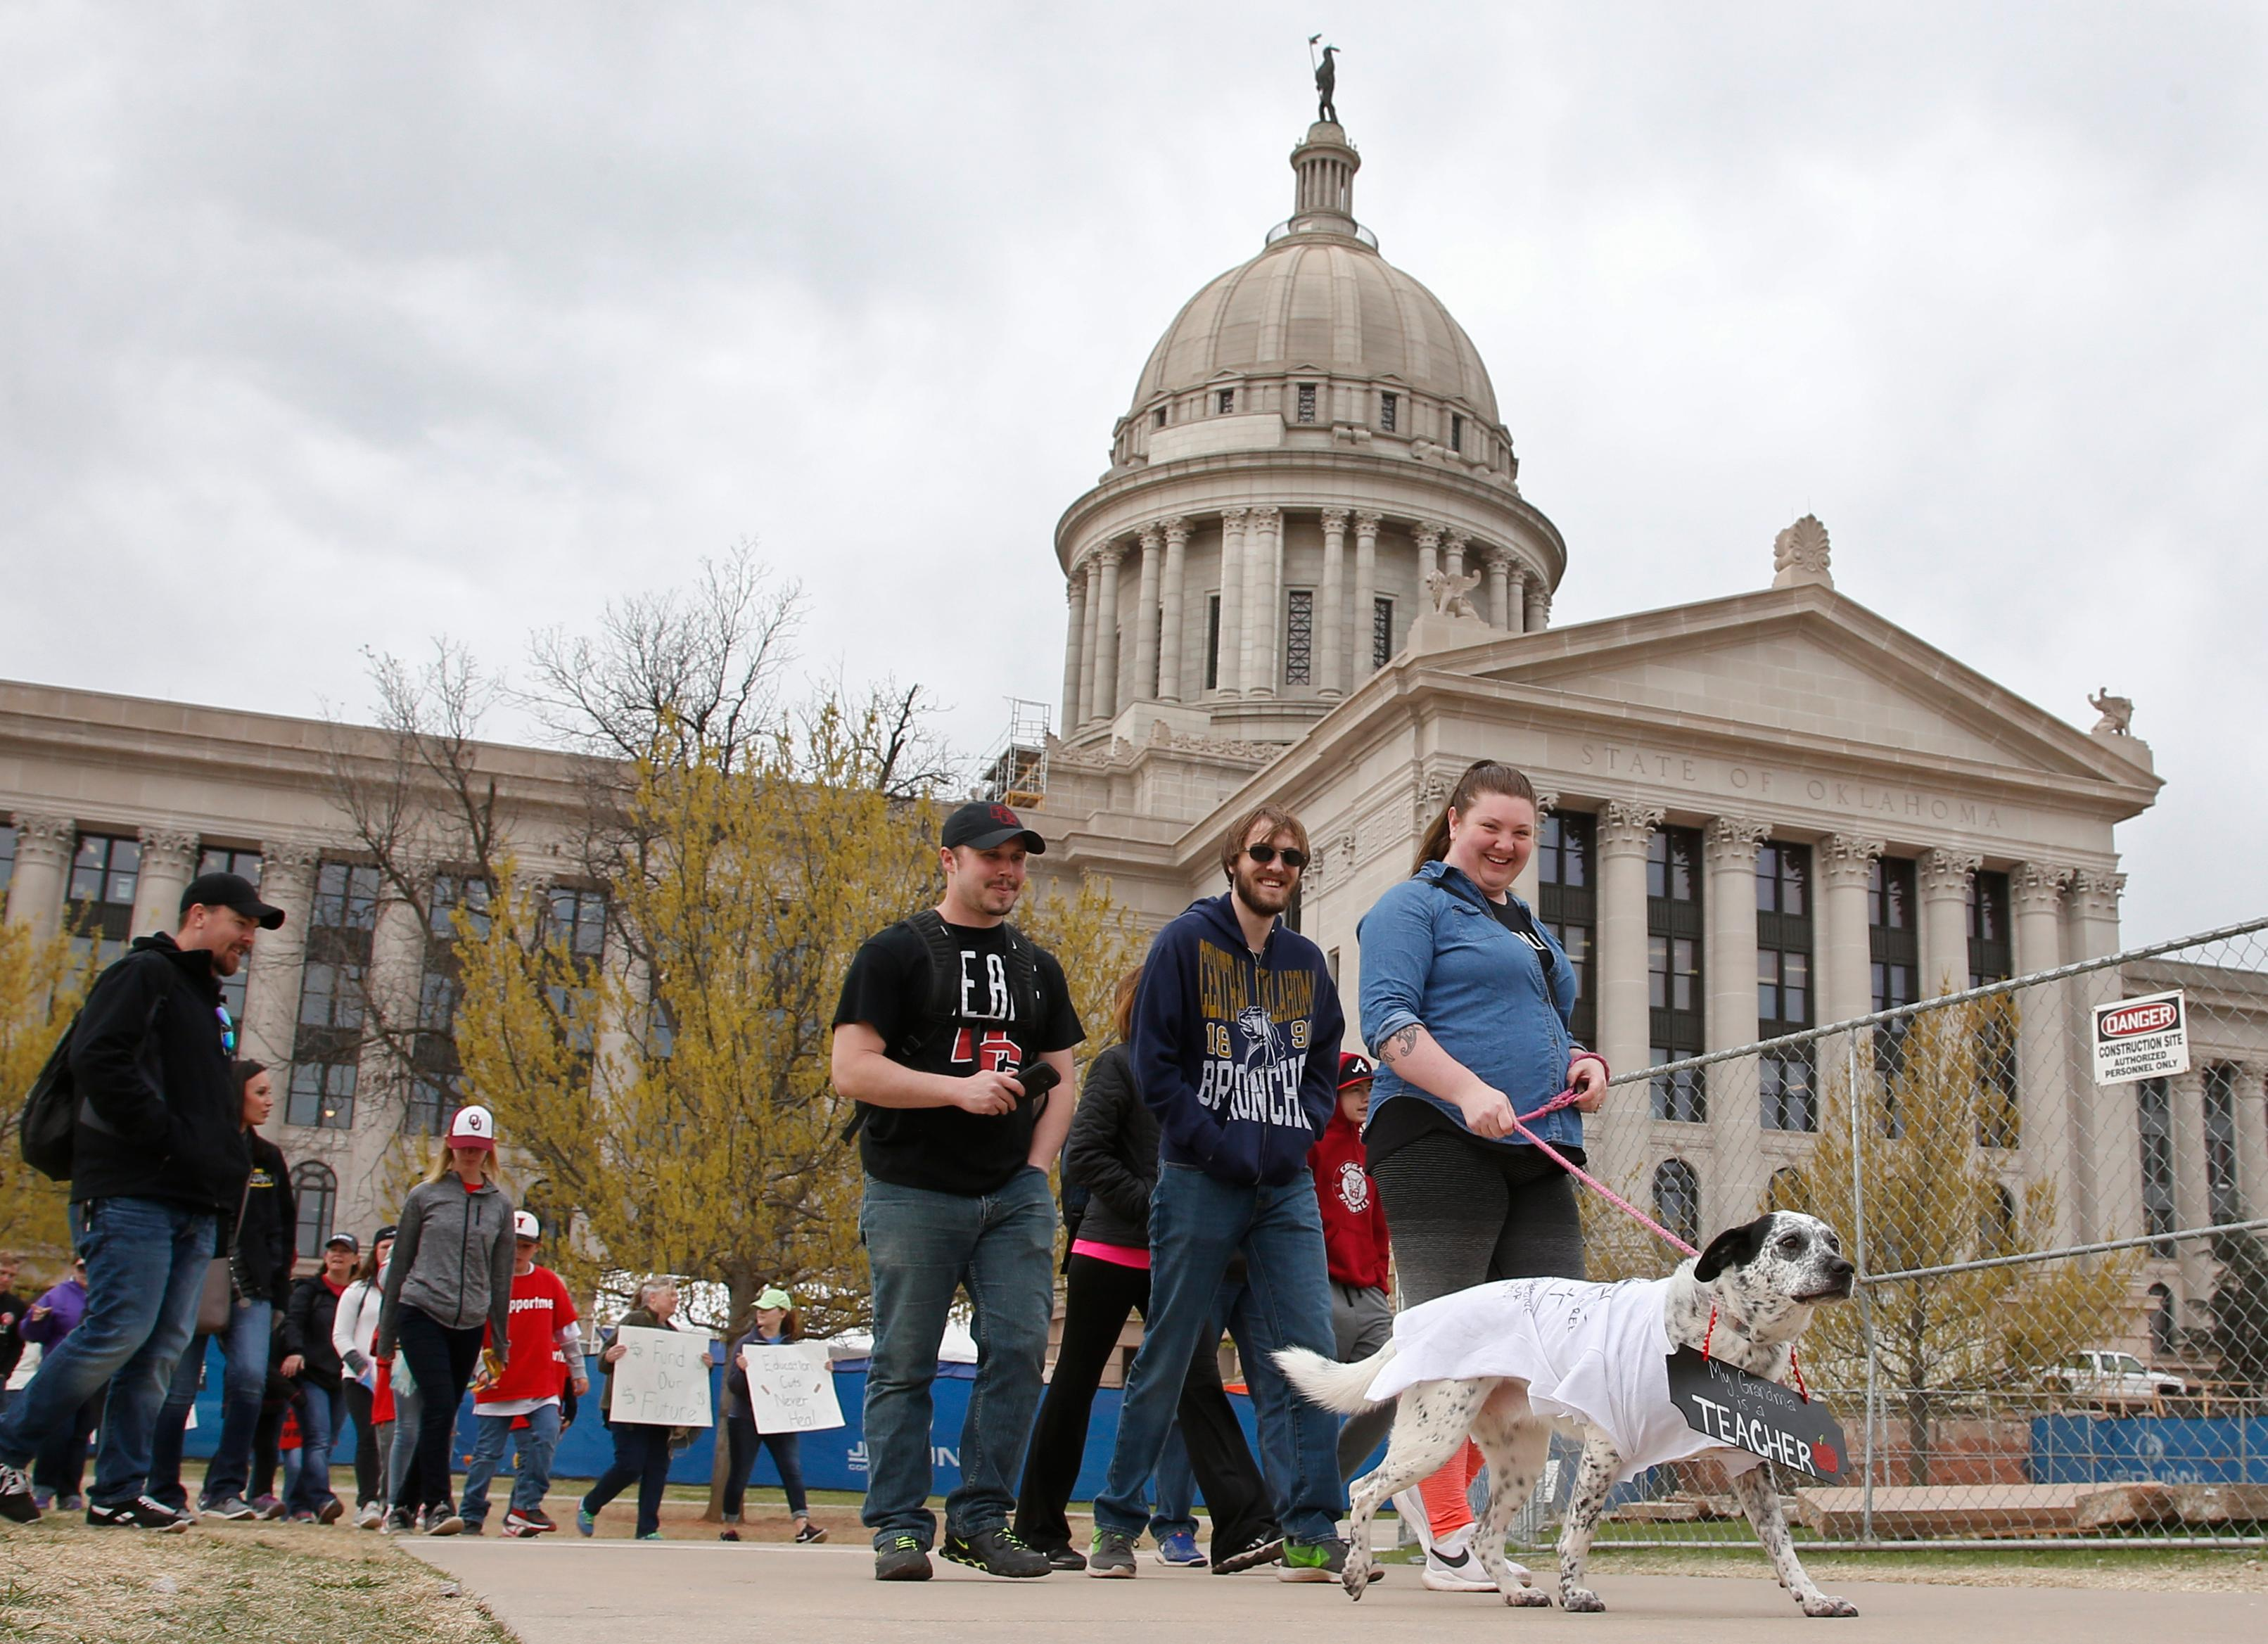 Luna marches with her owner Carlin George, of Oklahoma City, who is at the state Capitol to support her mother, who is a teacher, on the fourth day of protests over school funding, in Oklahoma City, Thursday, April 5, 2018. (AP Photo/Sue Ogrocki)